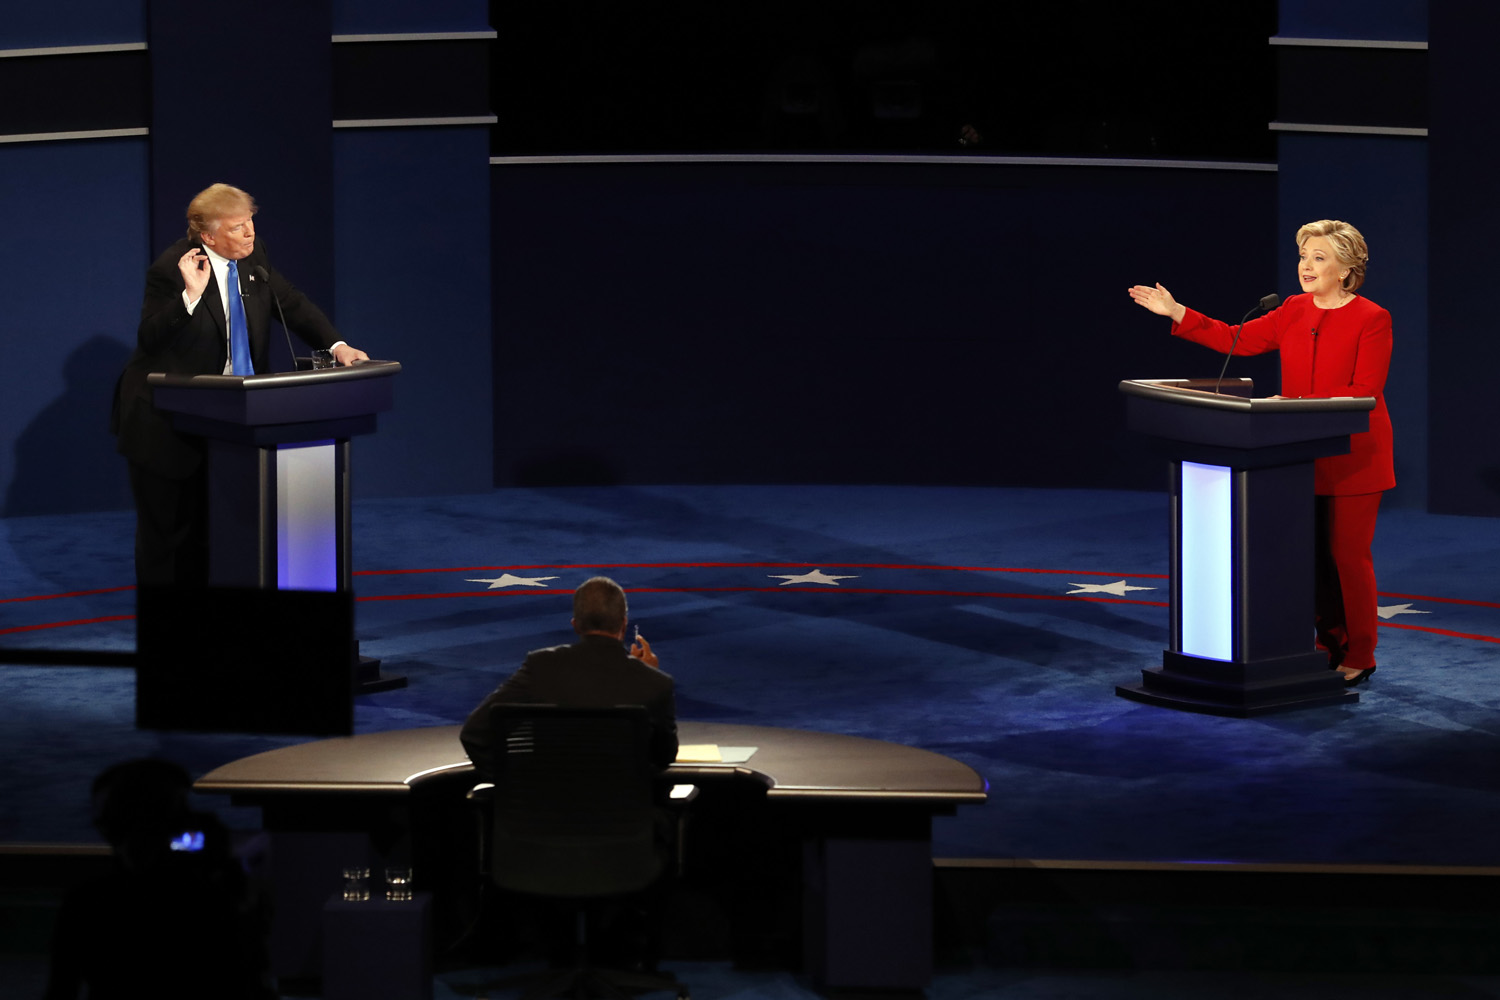 Republican presidential nominee Donald Trump and Democratic presidential nominee Hillary Clinton gesture during the presidential debate at Hofstra University in Hempstead, N.Y., Monday, Sept. 26, 2016. (AP Photo/Mary Altaffer)